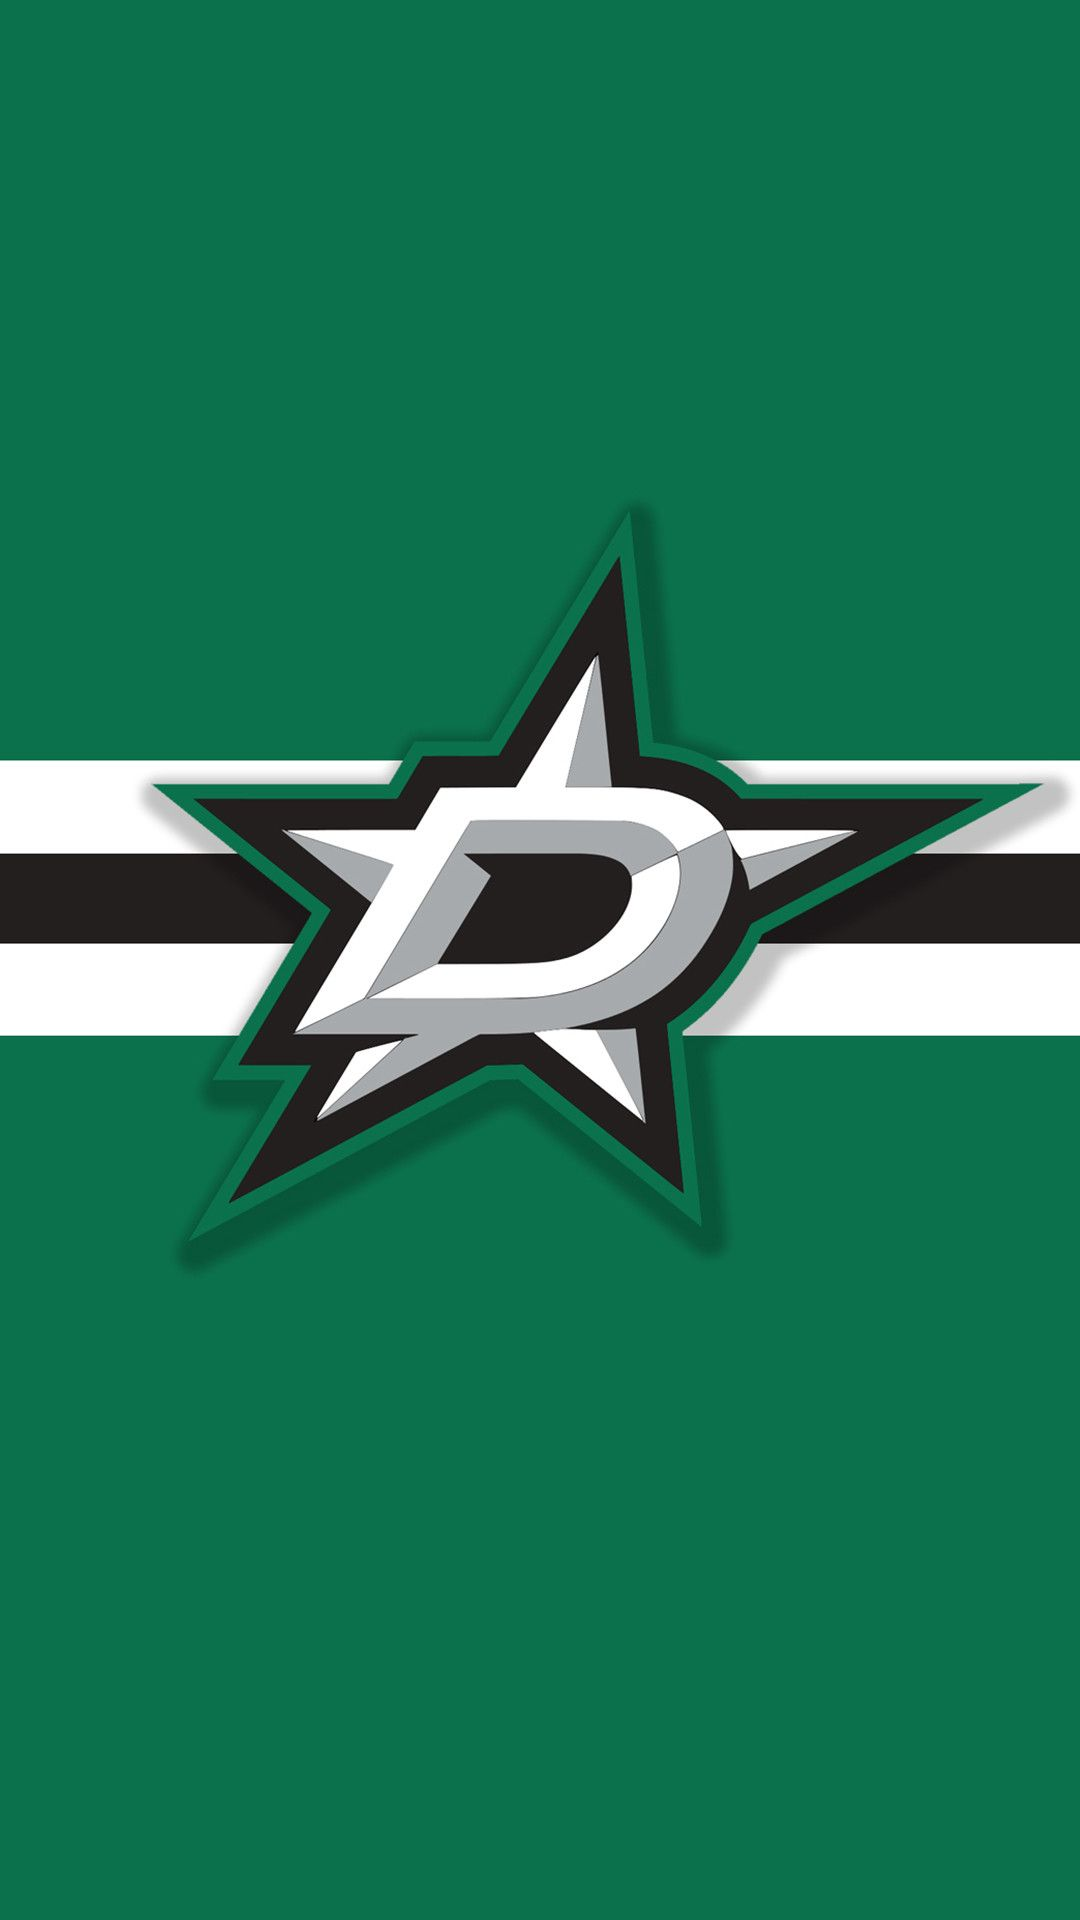 Dallas Stars Wallpapers Top Free Dallas Stars Backgrounds Wallpaperaccess